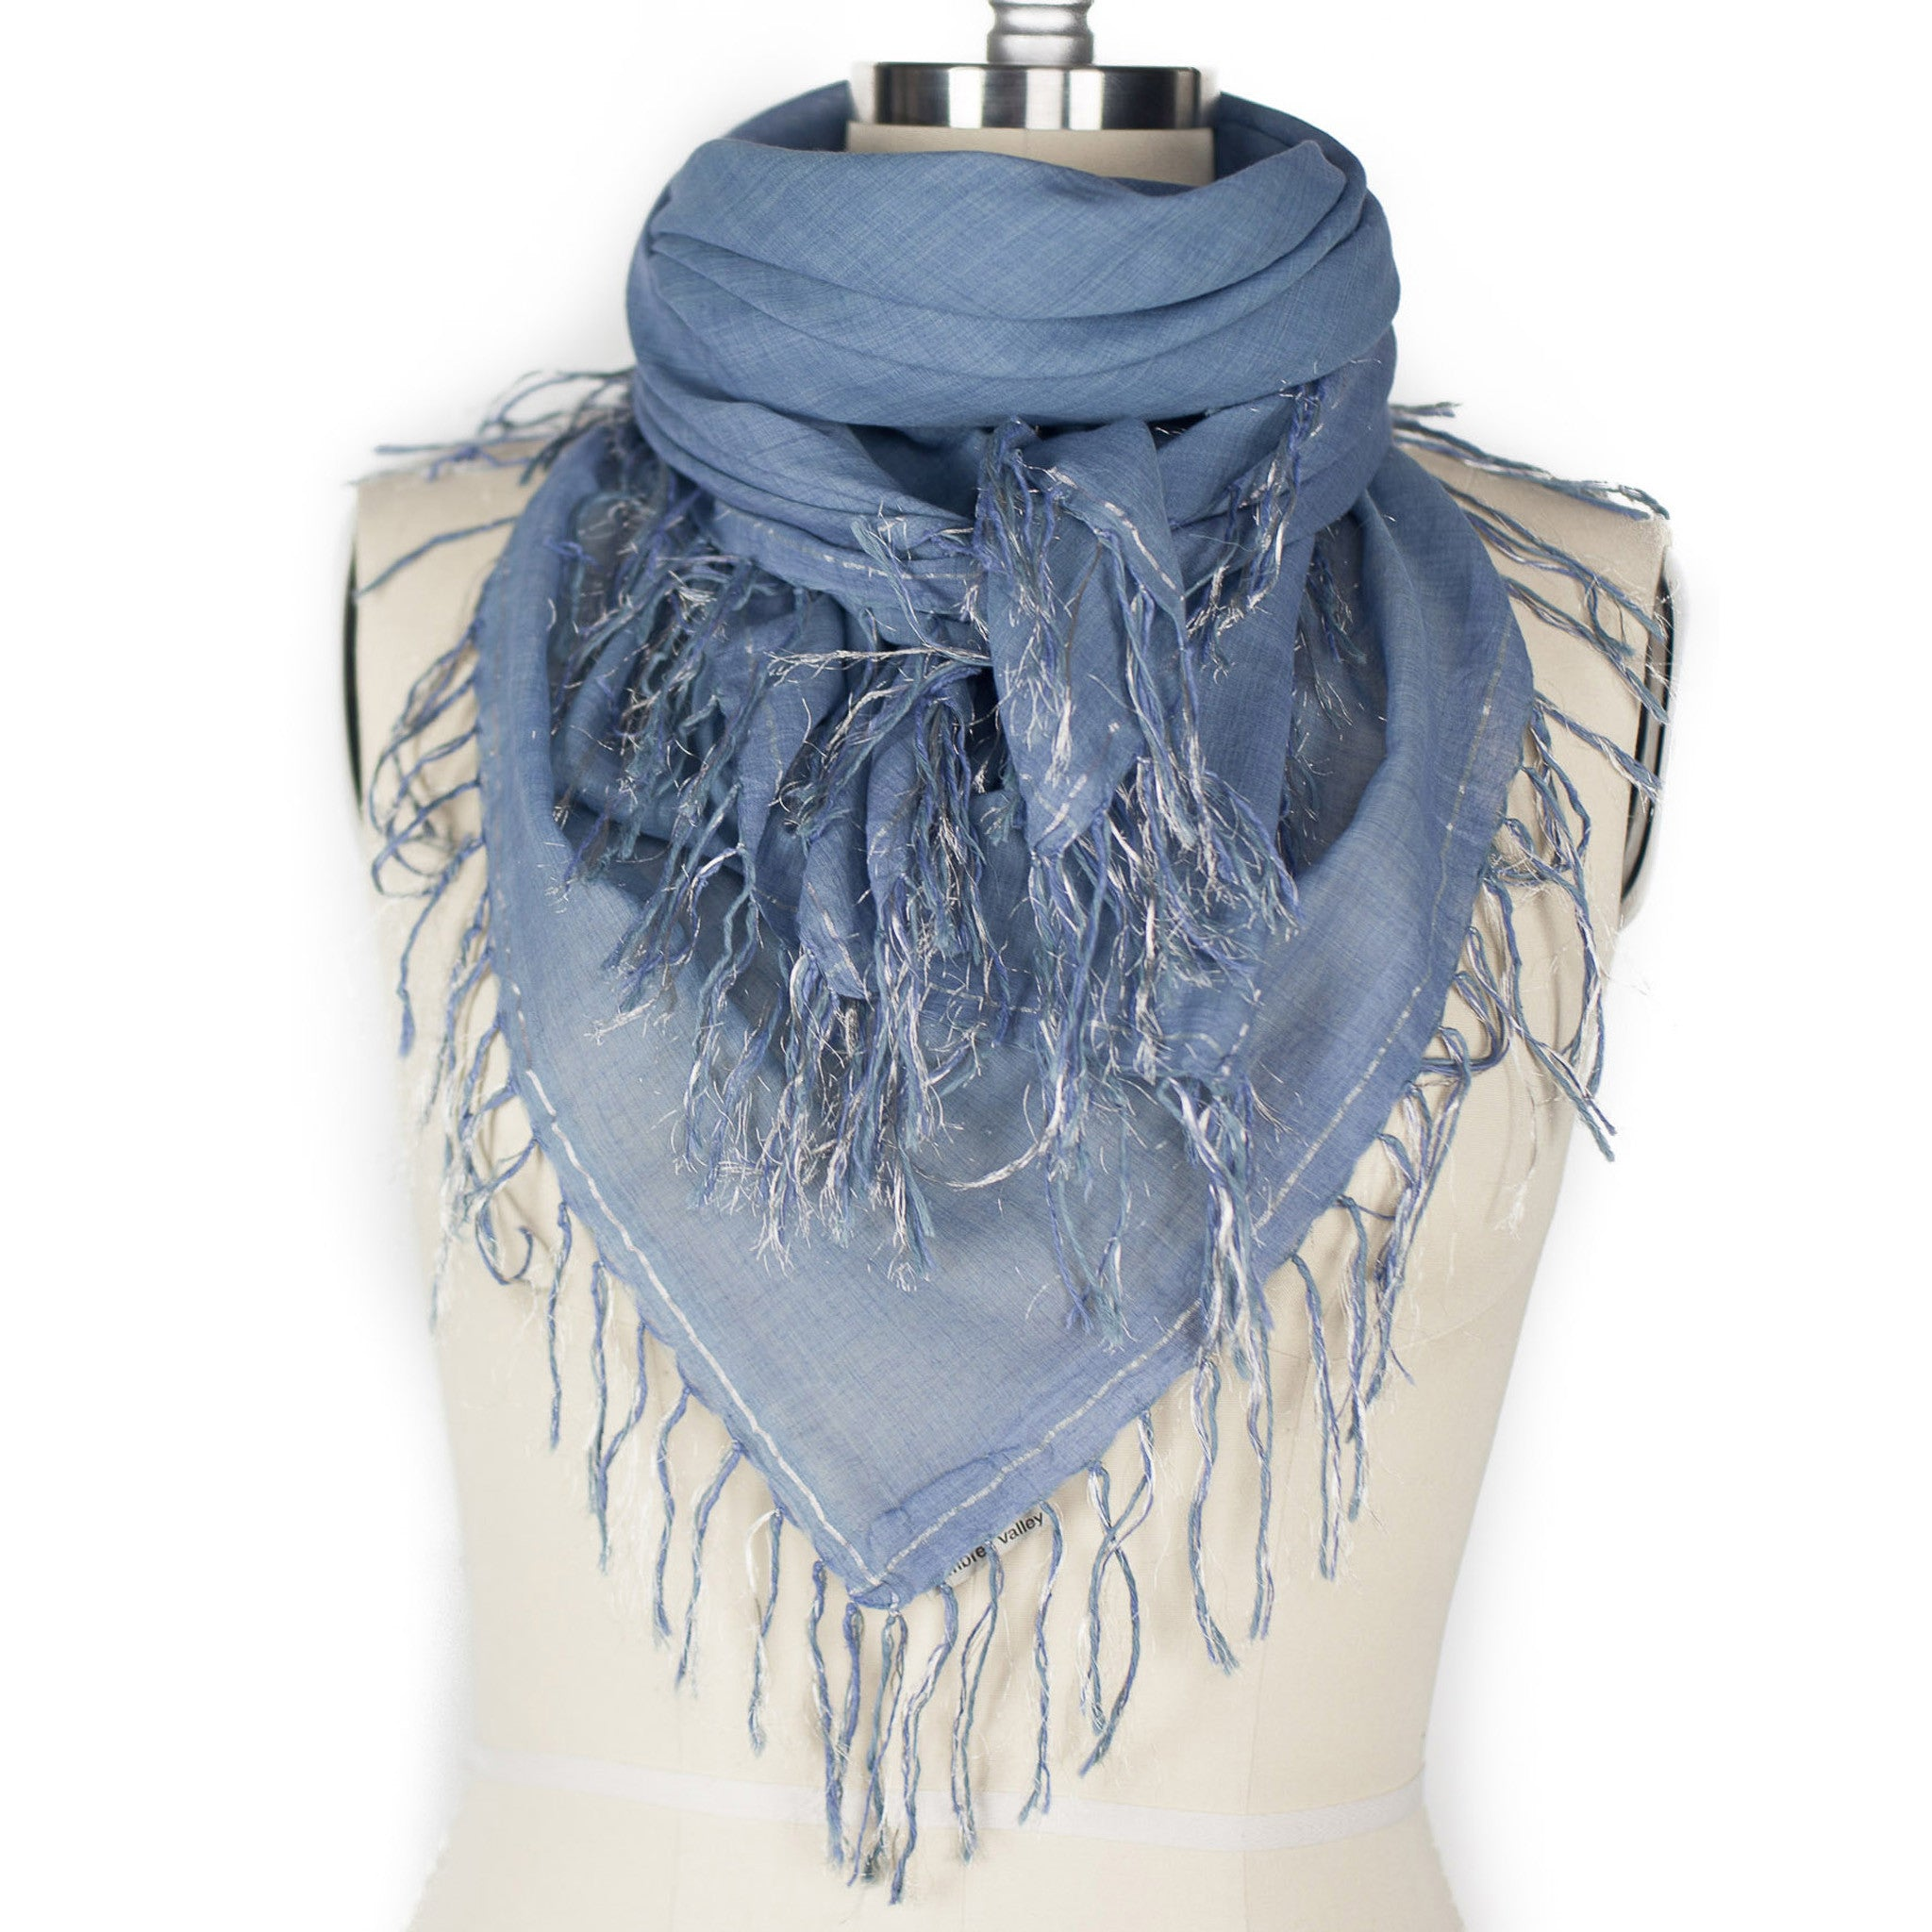 4 Sided Fringe Scarf - French Blue